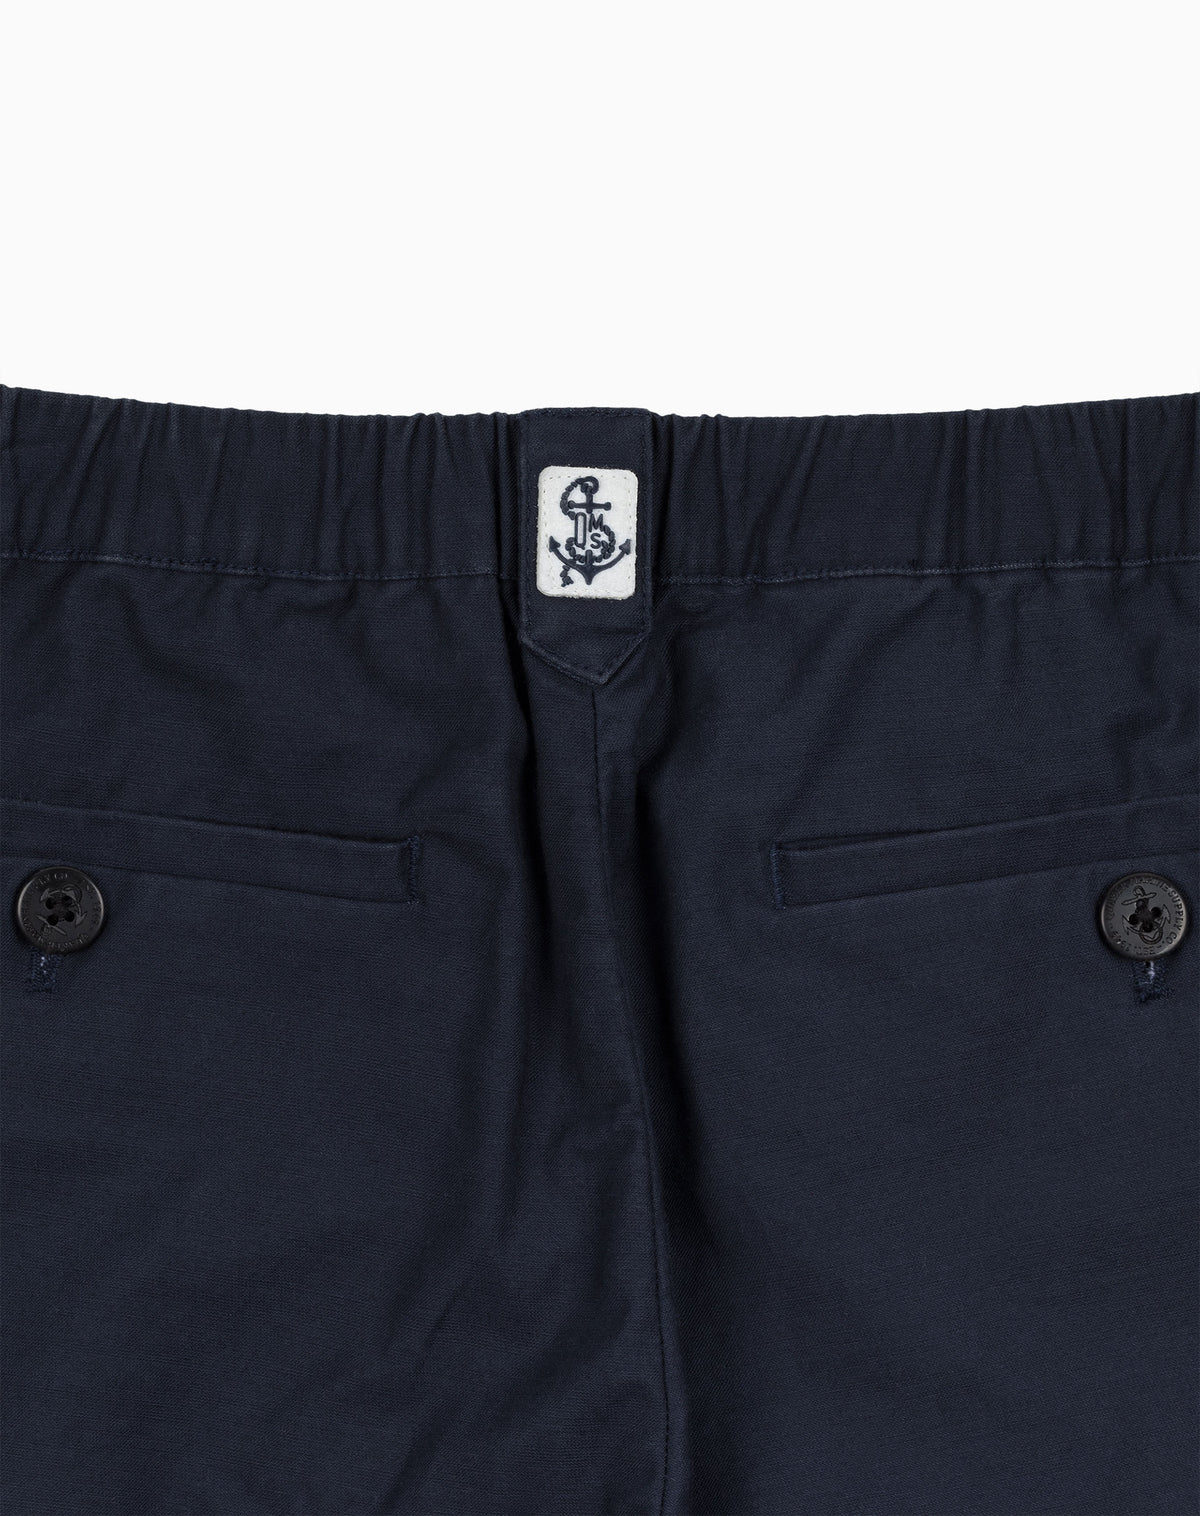 Deck Jogger in Navy Military Cloth